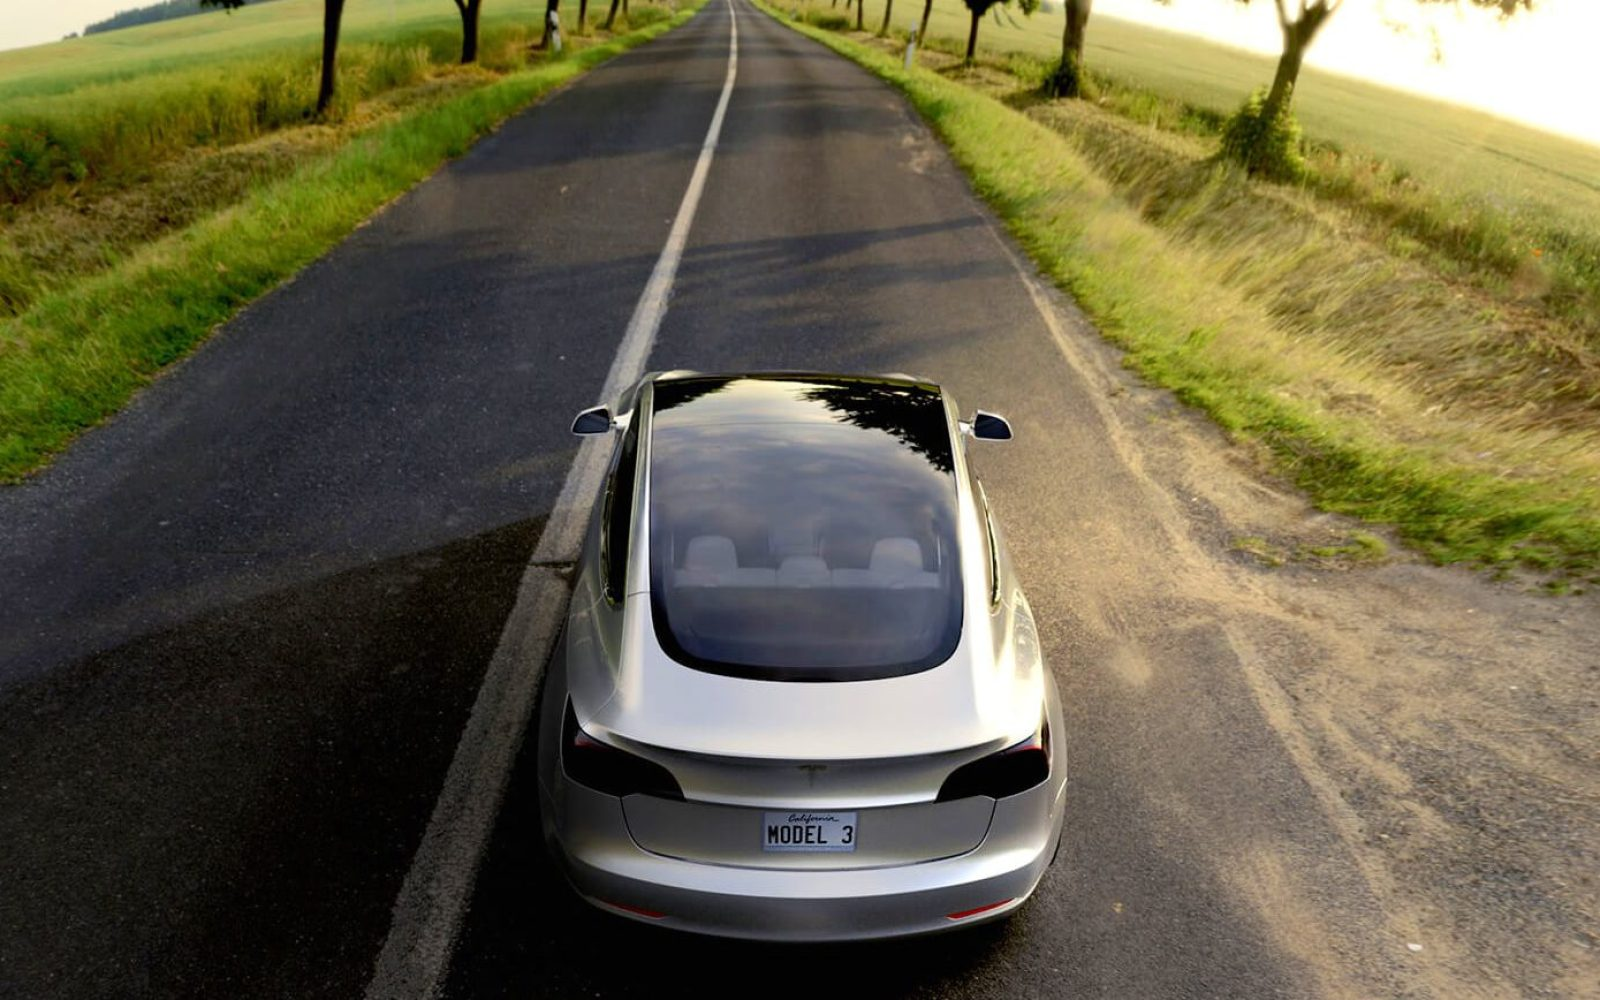 Tesla Model 3 will probably have a solar roof option – maybe even 'deployable', says CEO Elon Musk